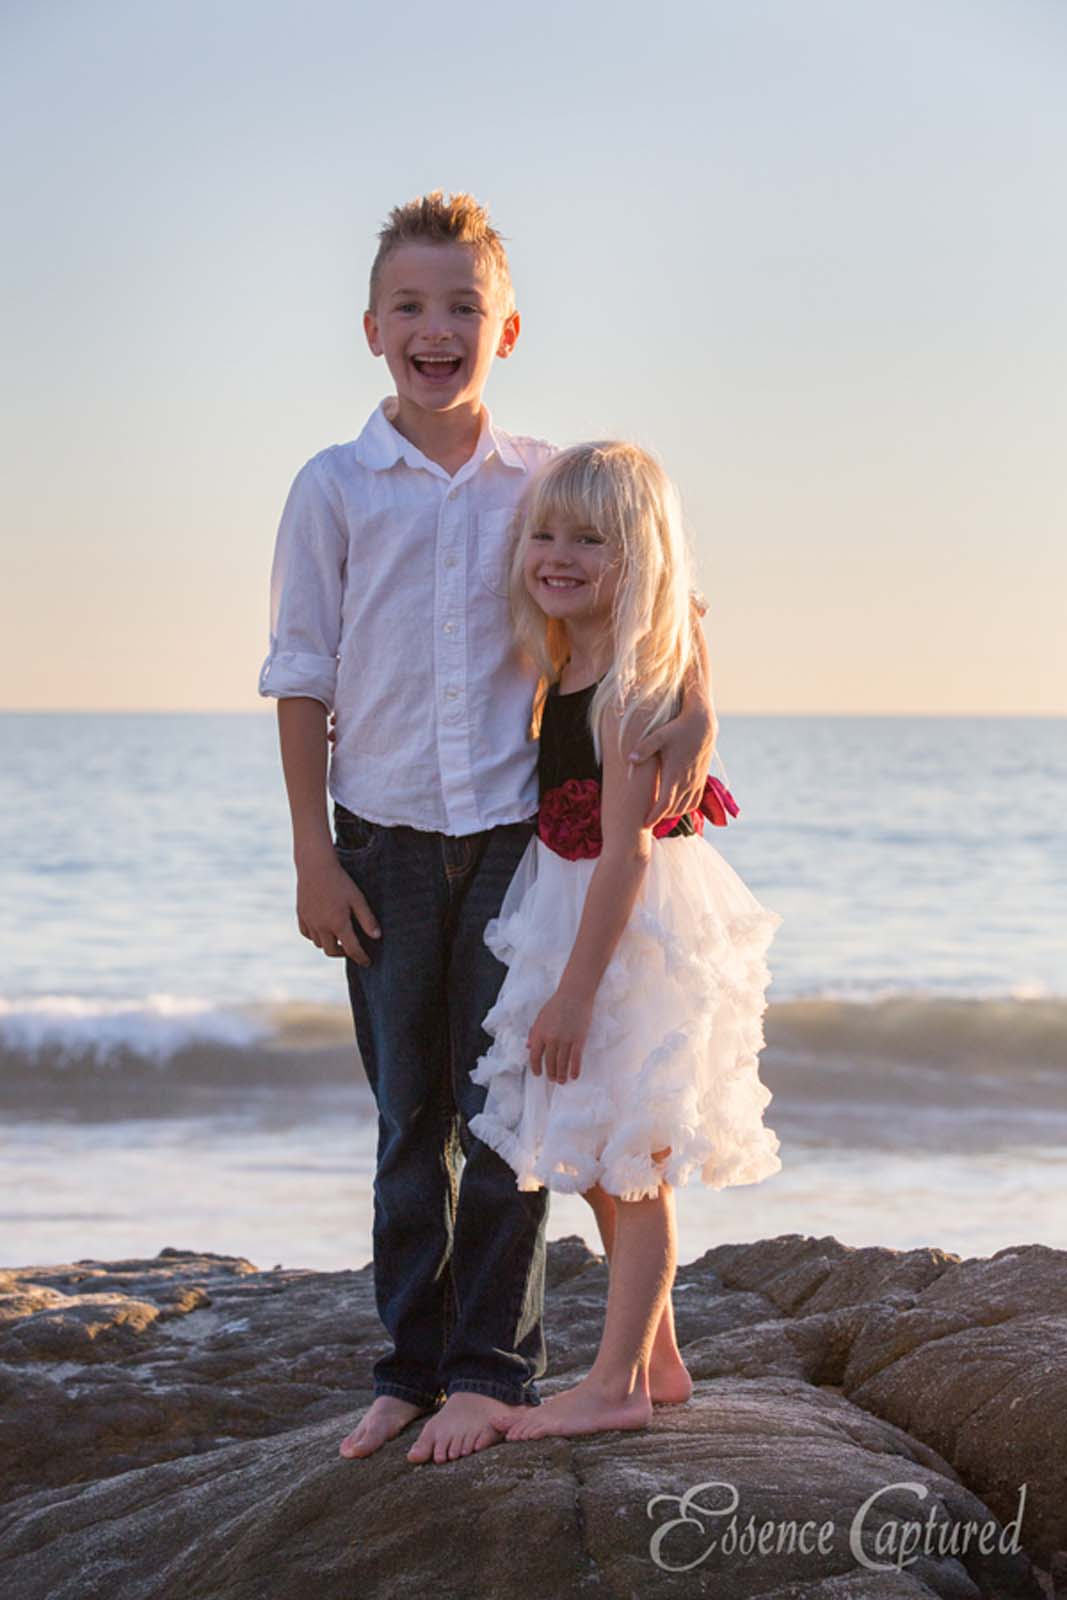 happy brother sister portrait at beach sunset ocean dressed up